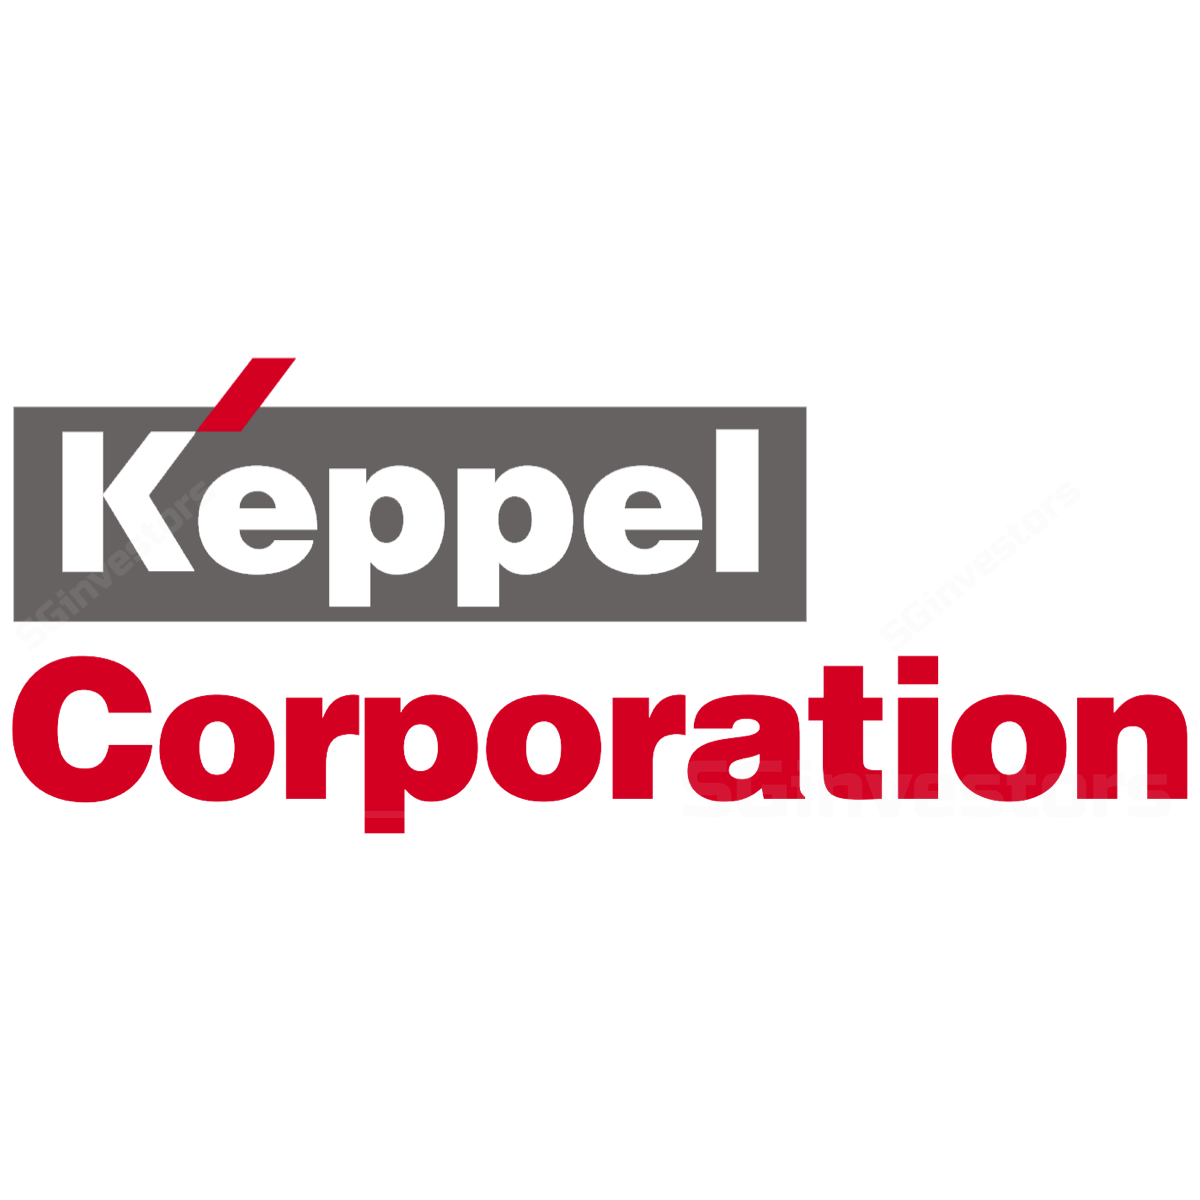 Keppel Corporation - OCBC Investment Research 2018-09-10: Staying The Pace